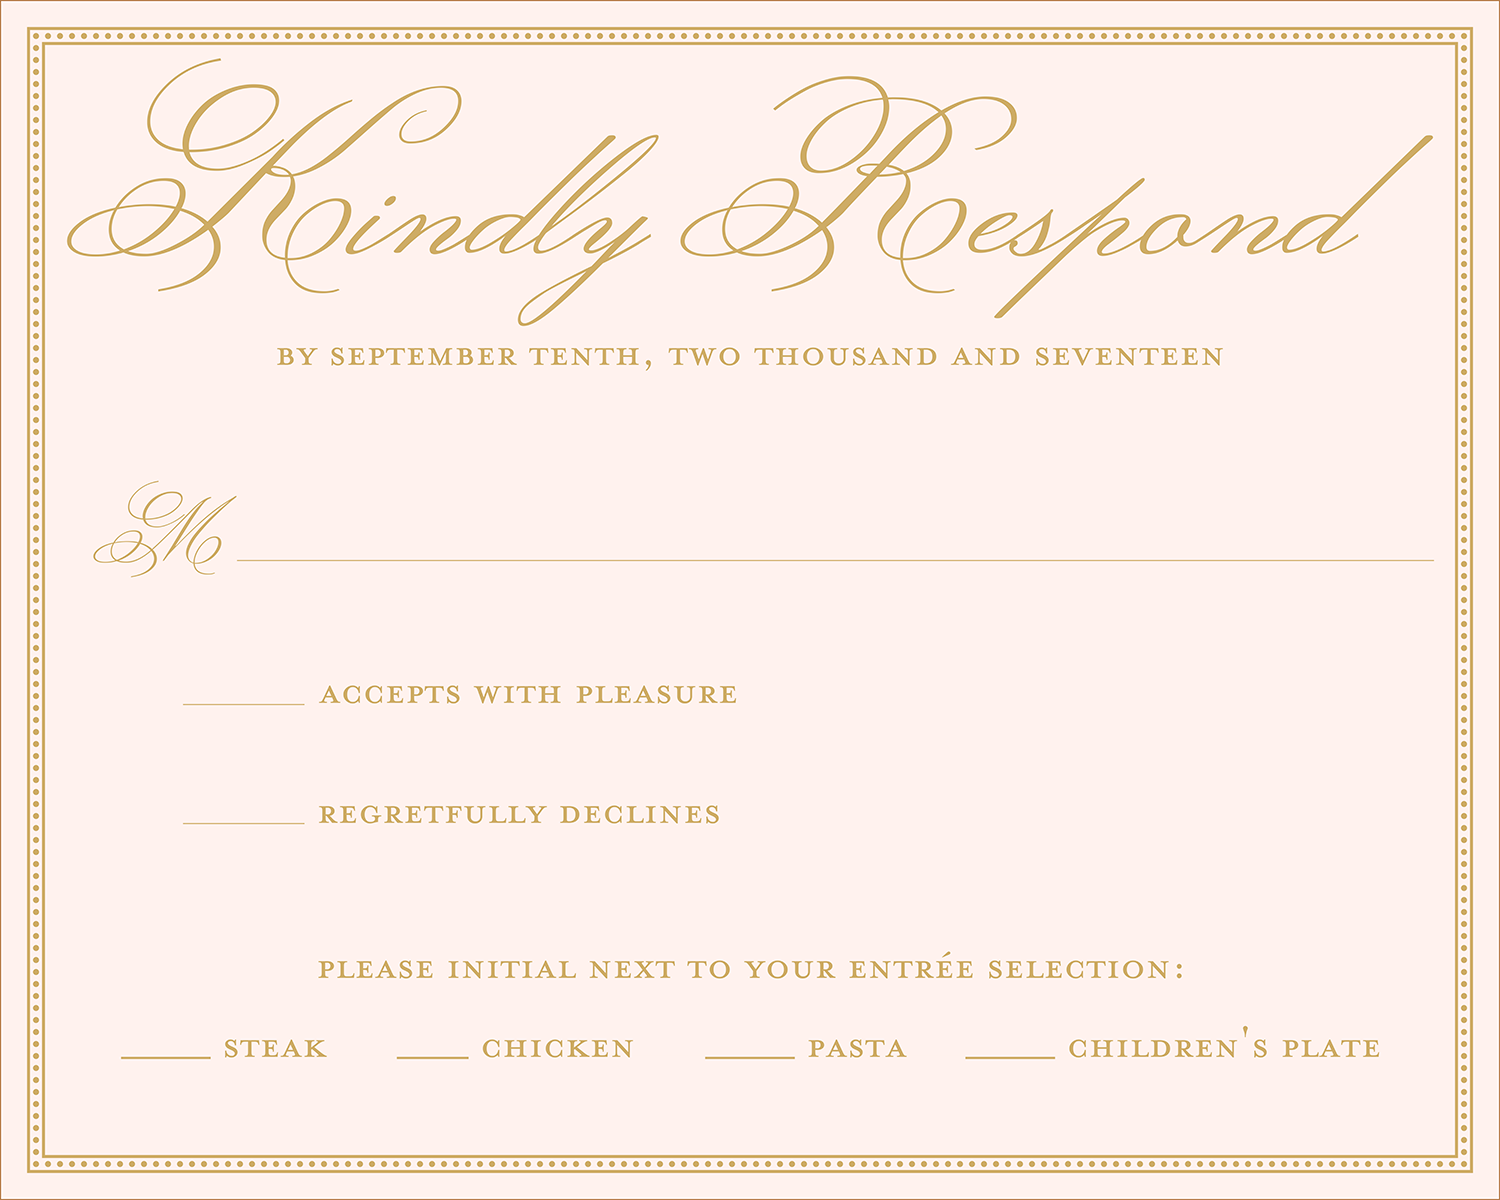 Wedding Invitation Wording Ideas: Wedding RSVP Wording Ideas